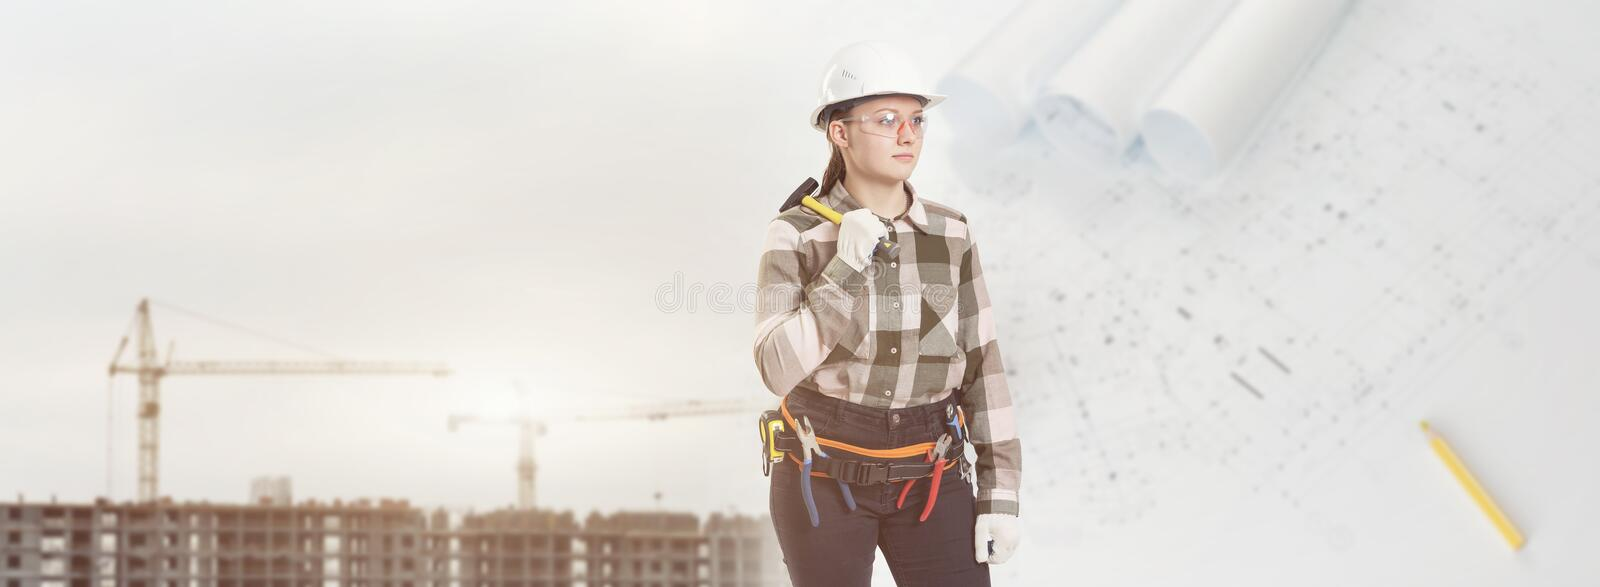 A female construction worker in safety helmet holds a hammer. Against city background stock photos